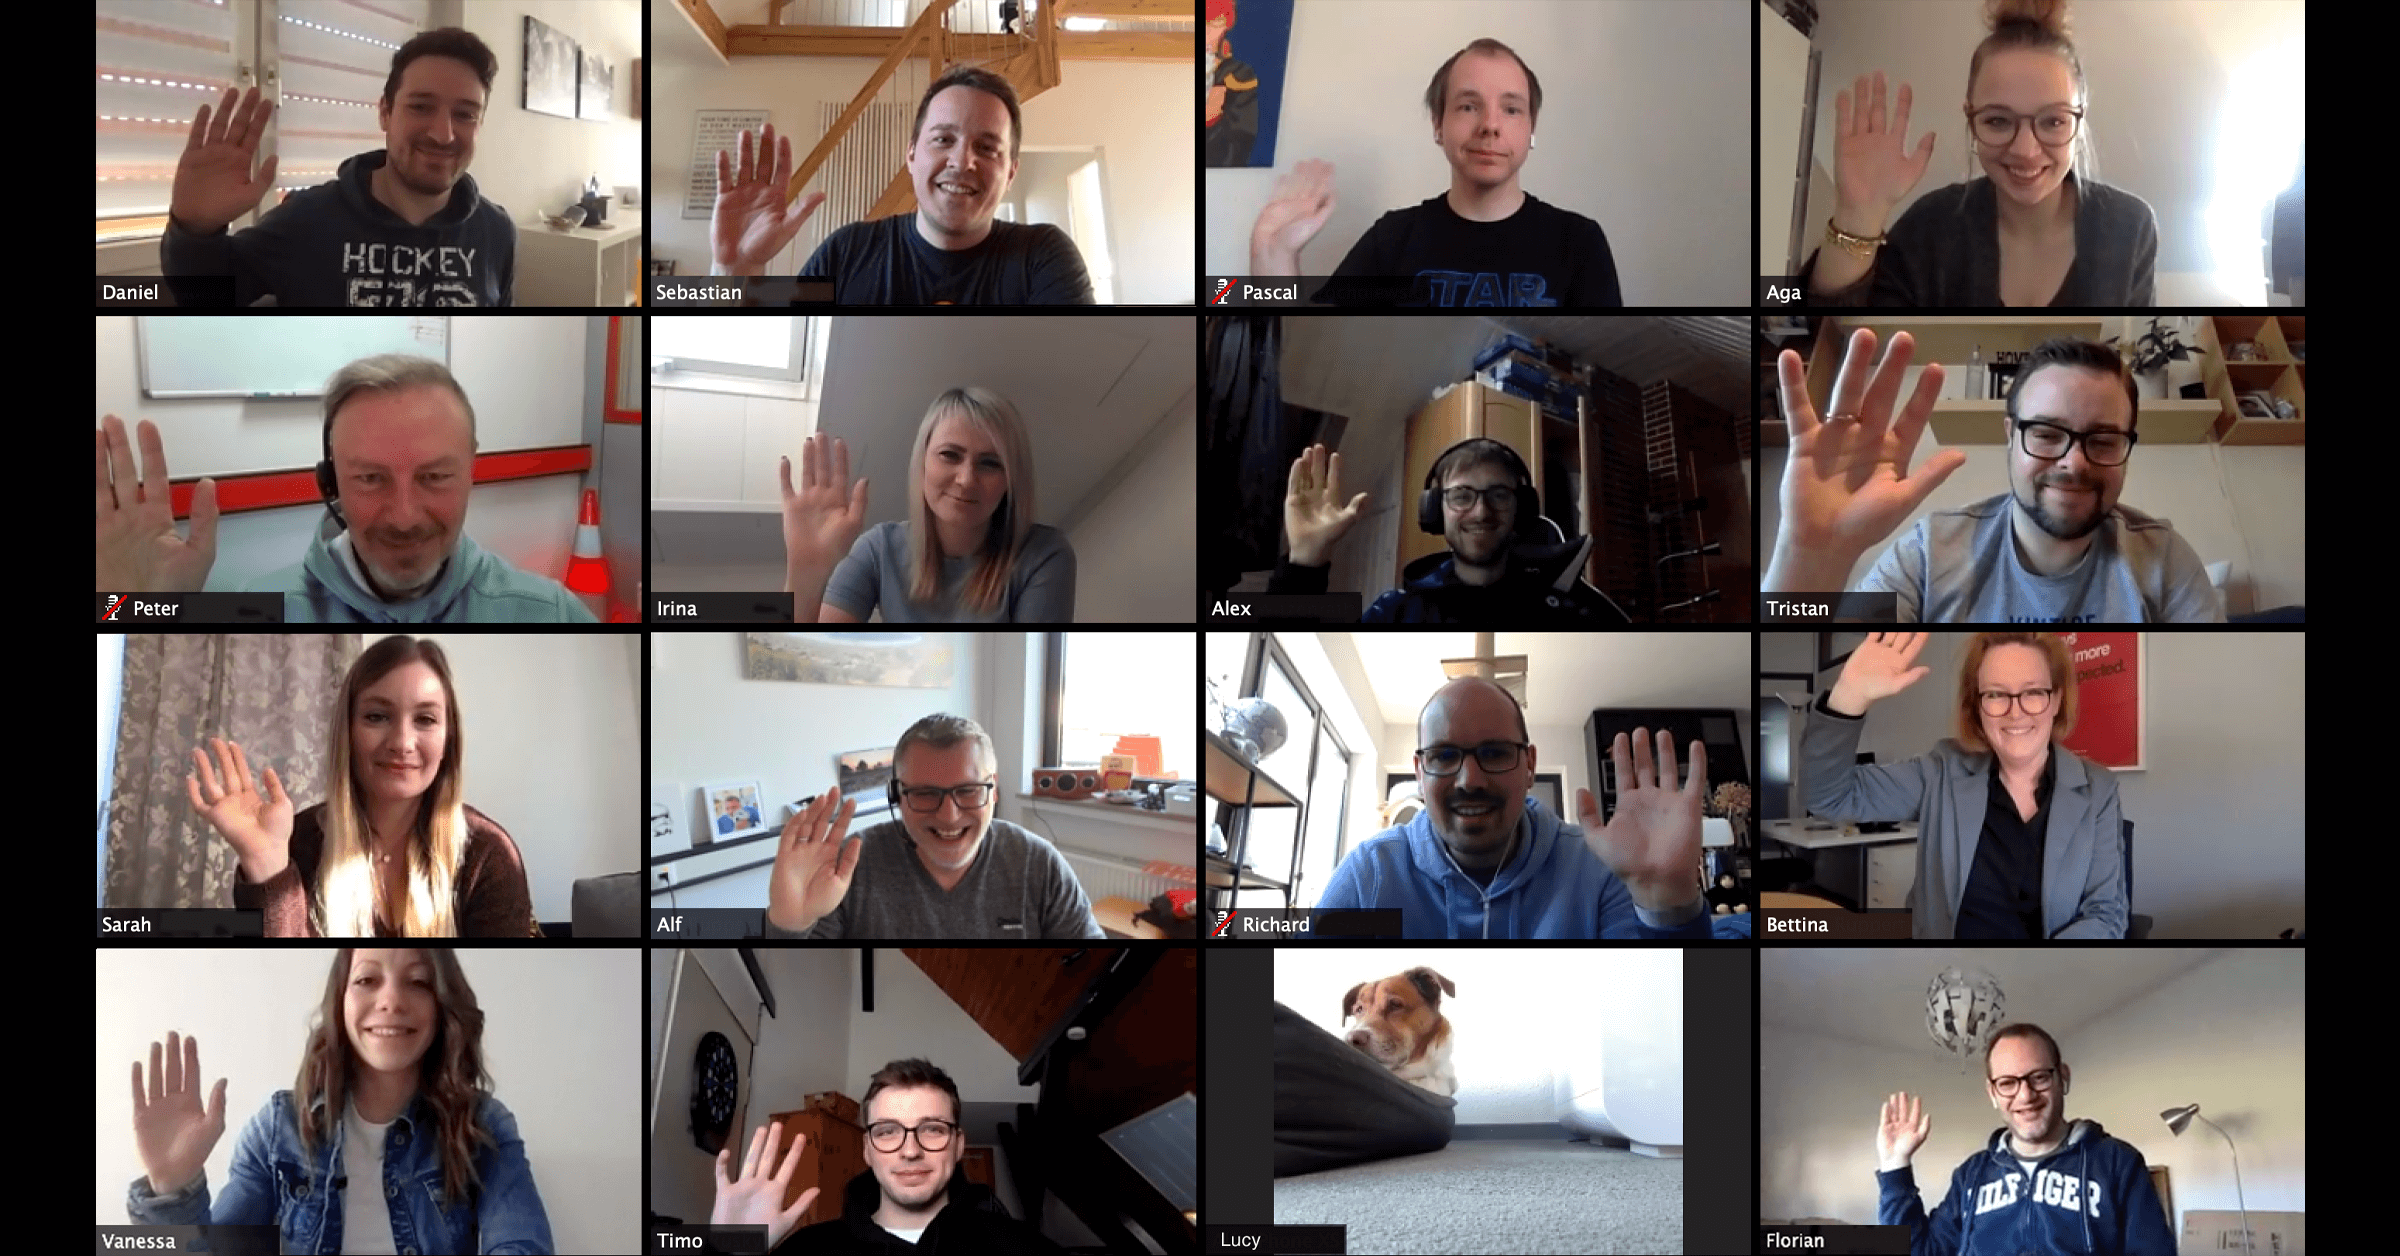 Our Series on Remote Working: Zoom Video Conferencing with Customers and Colleagues